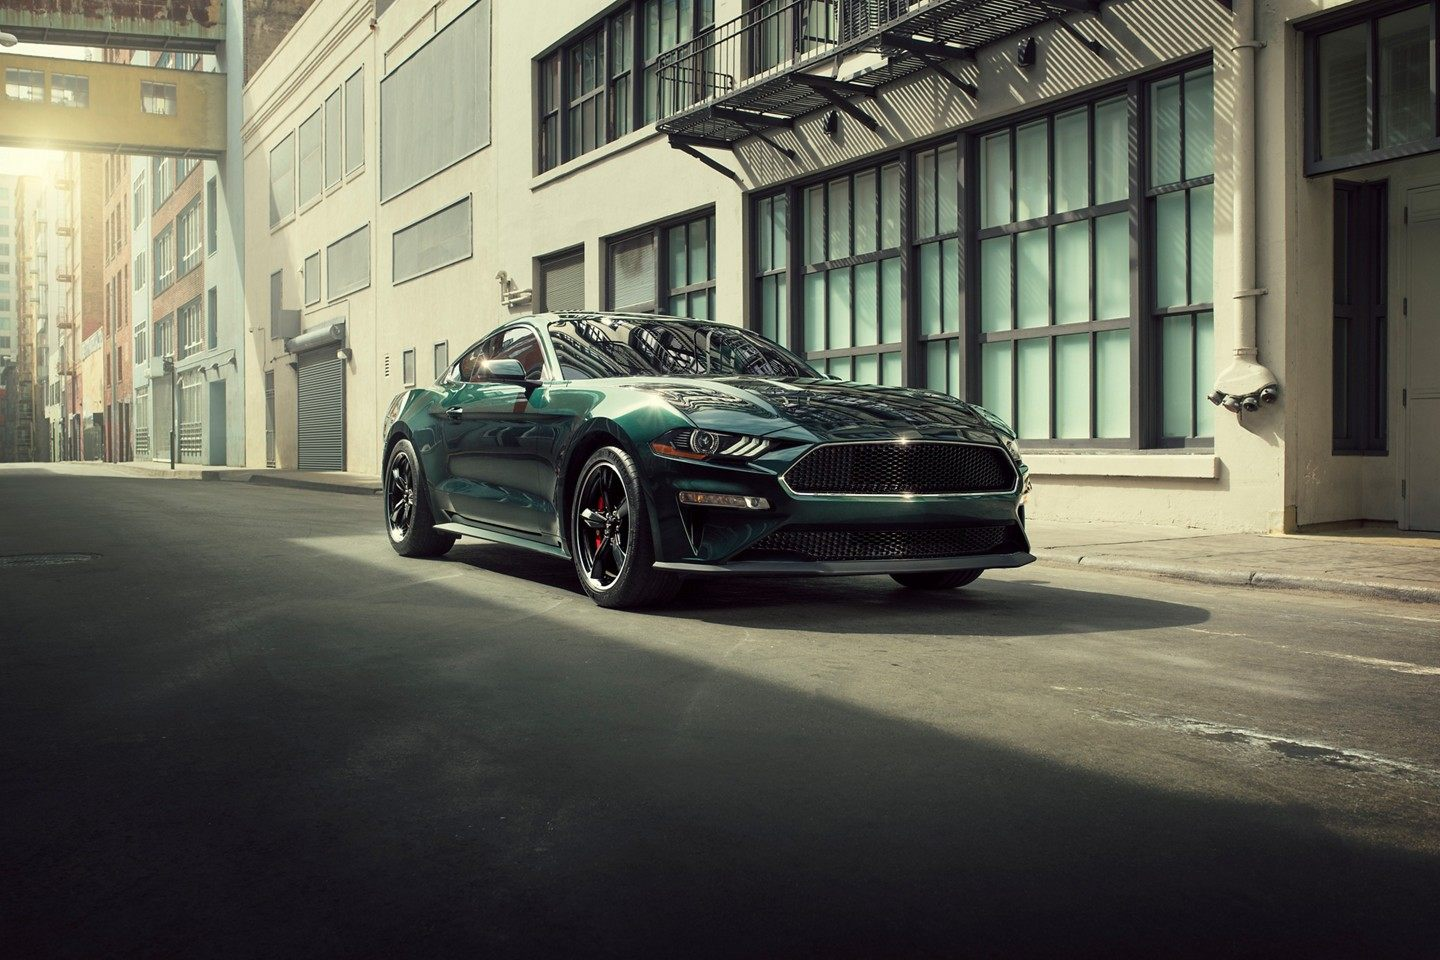 2019 Ford Mustang: More Than a One Trick Pony